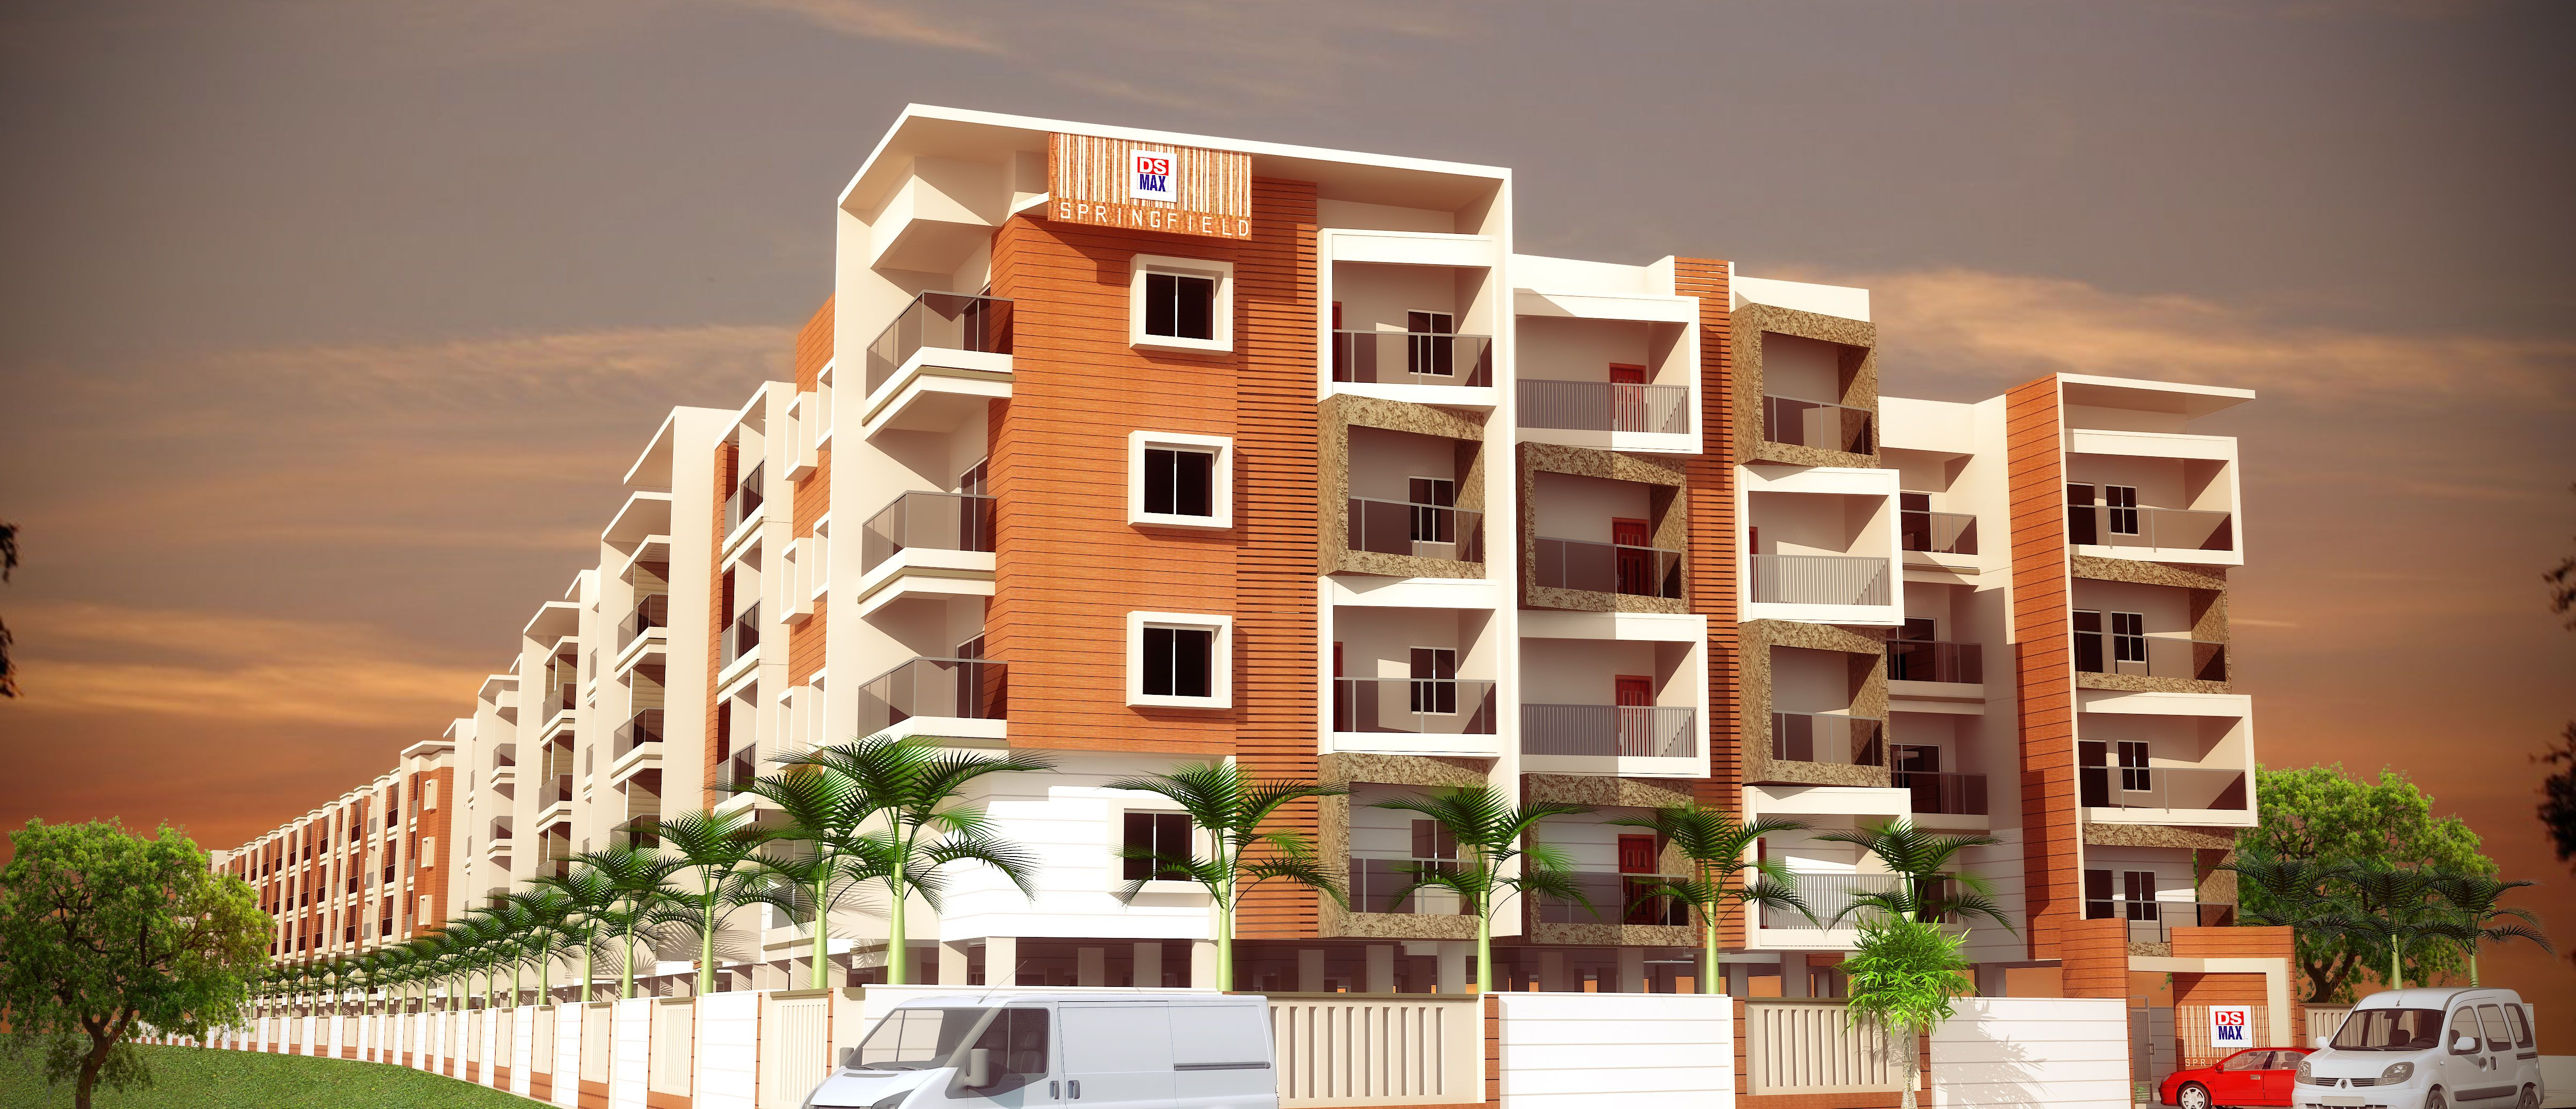 Ds Max Properties A Real Estate Builders In Bangalore And Property Developers Ing Affordable Flats Apartments Covering North East West South